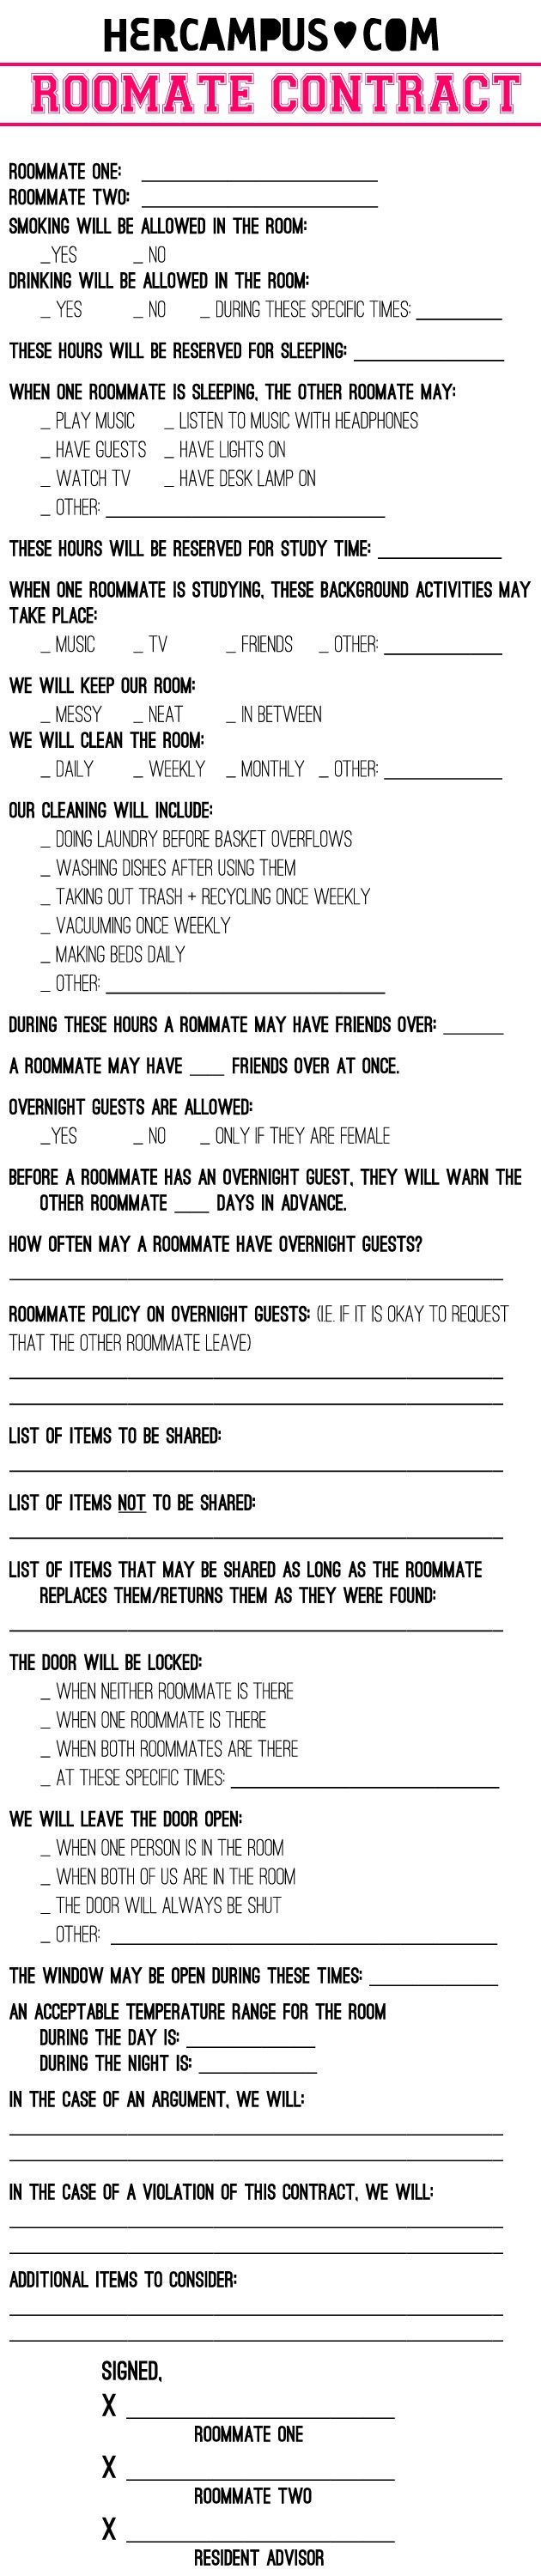 Best 20+ Roommate contract ideas on Pinterest | College roommate ...